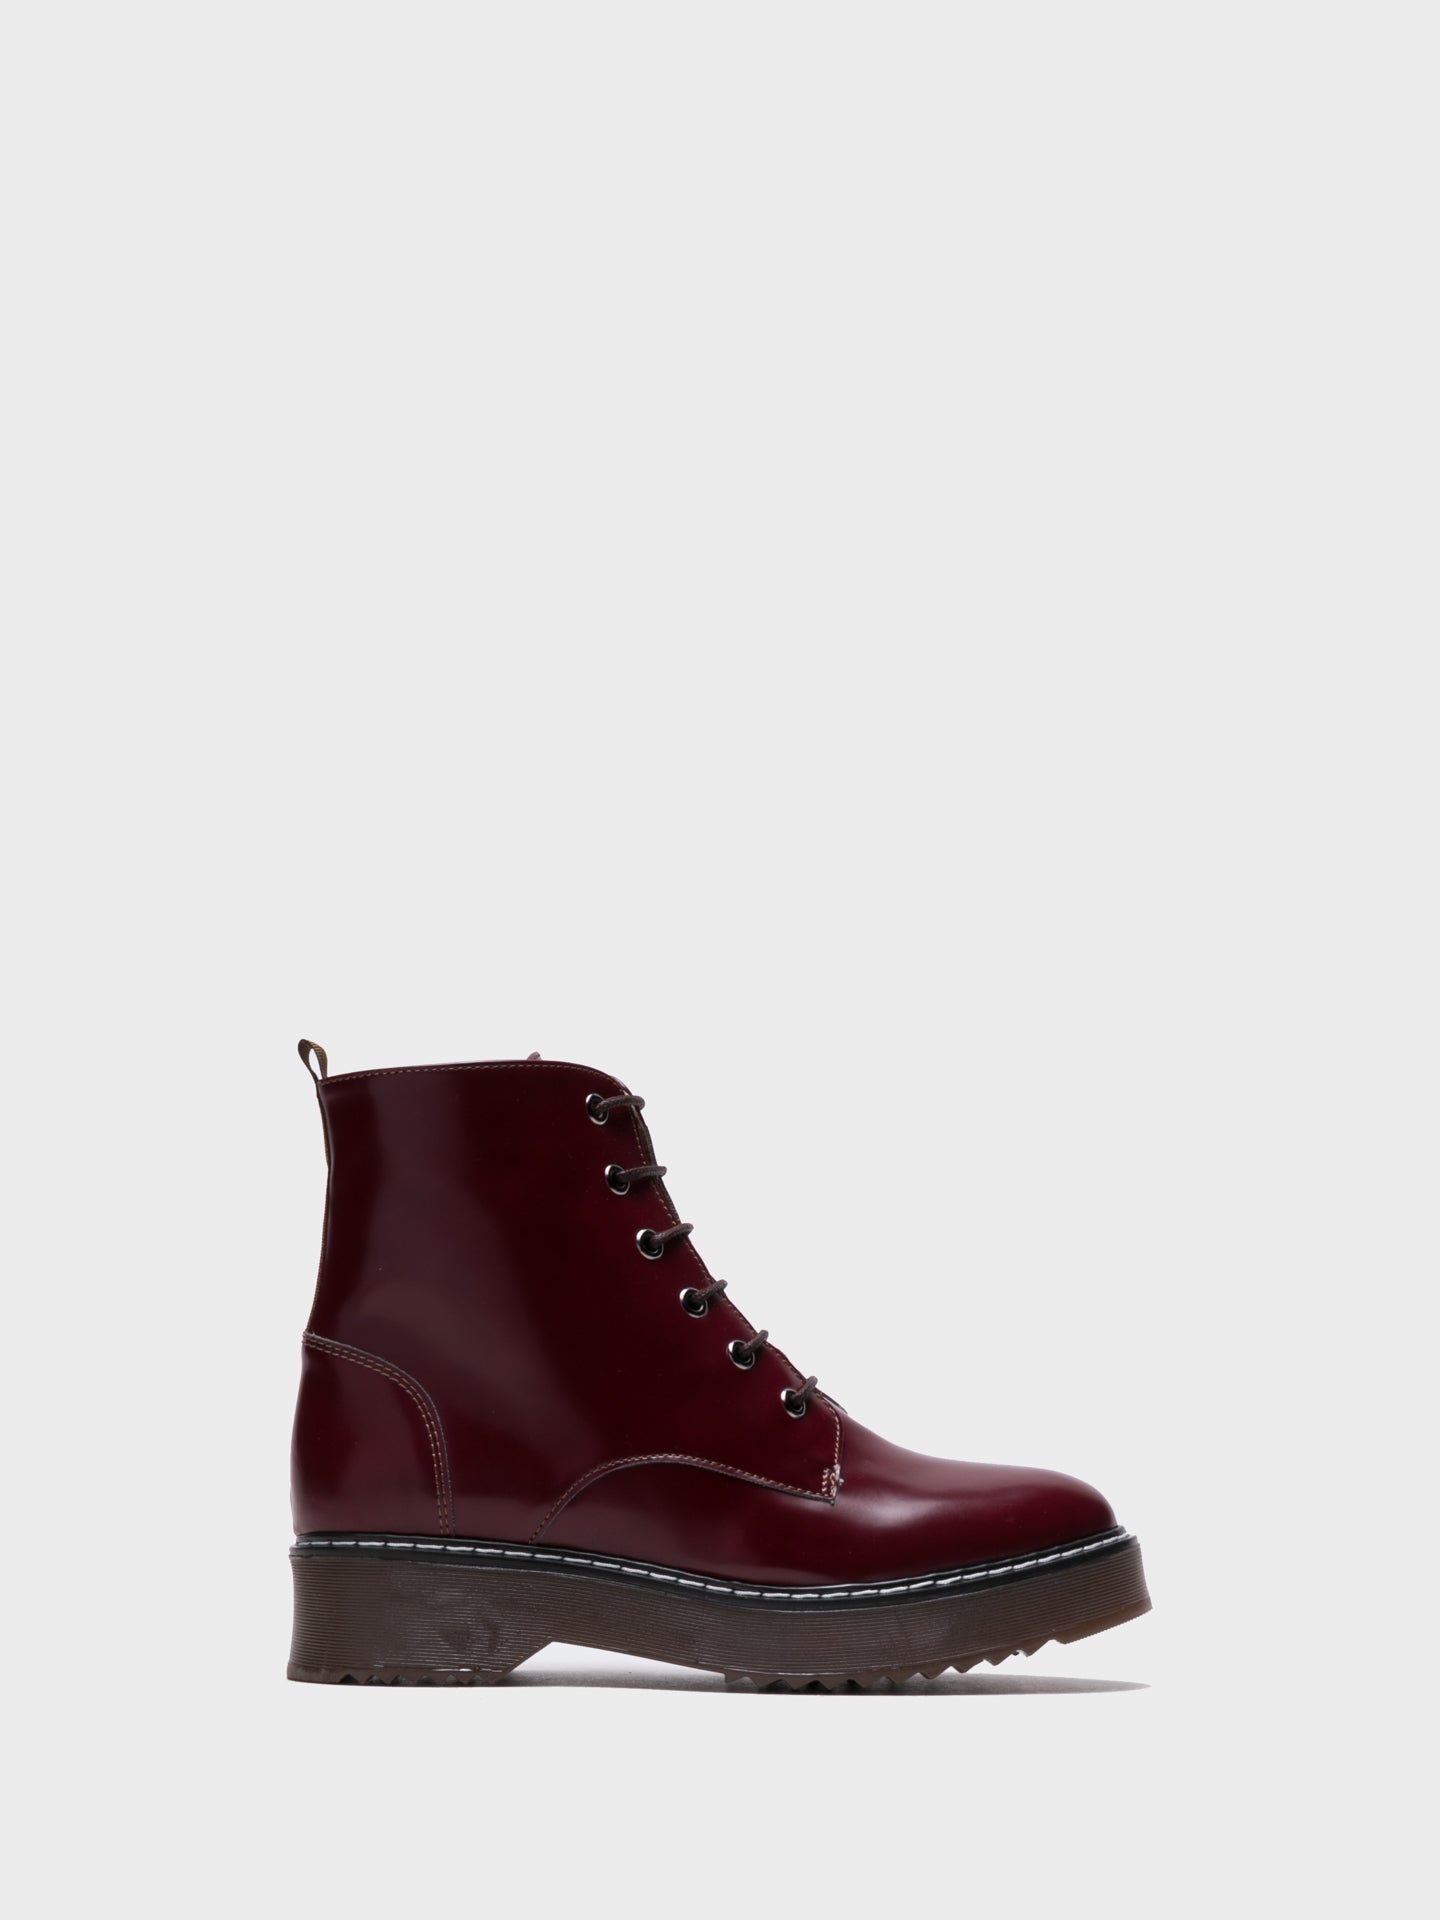 NAE DarkRed Lace-up Boots